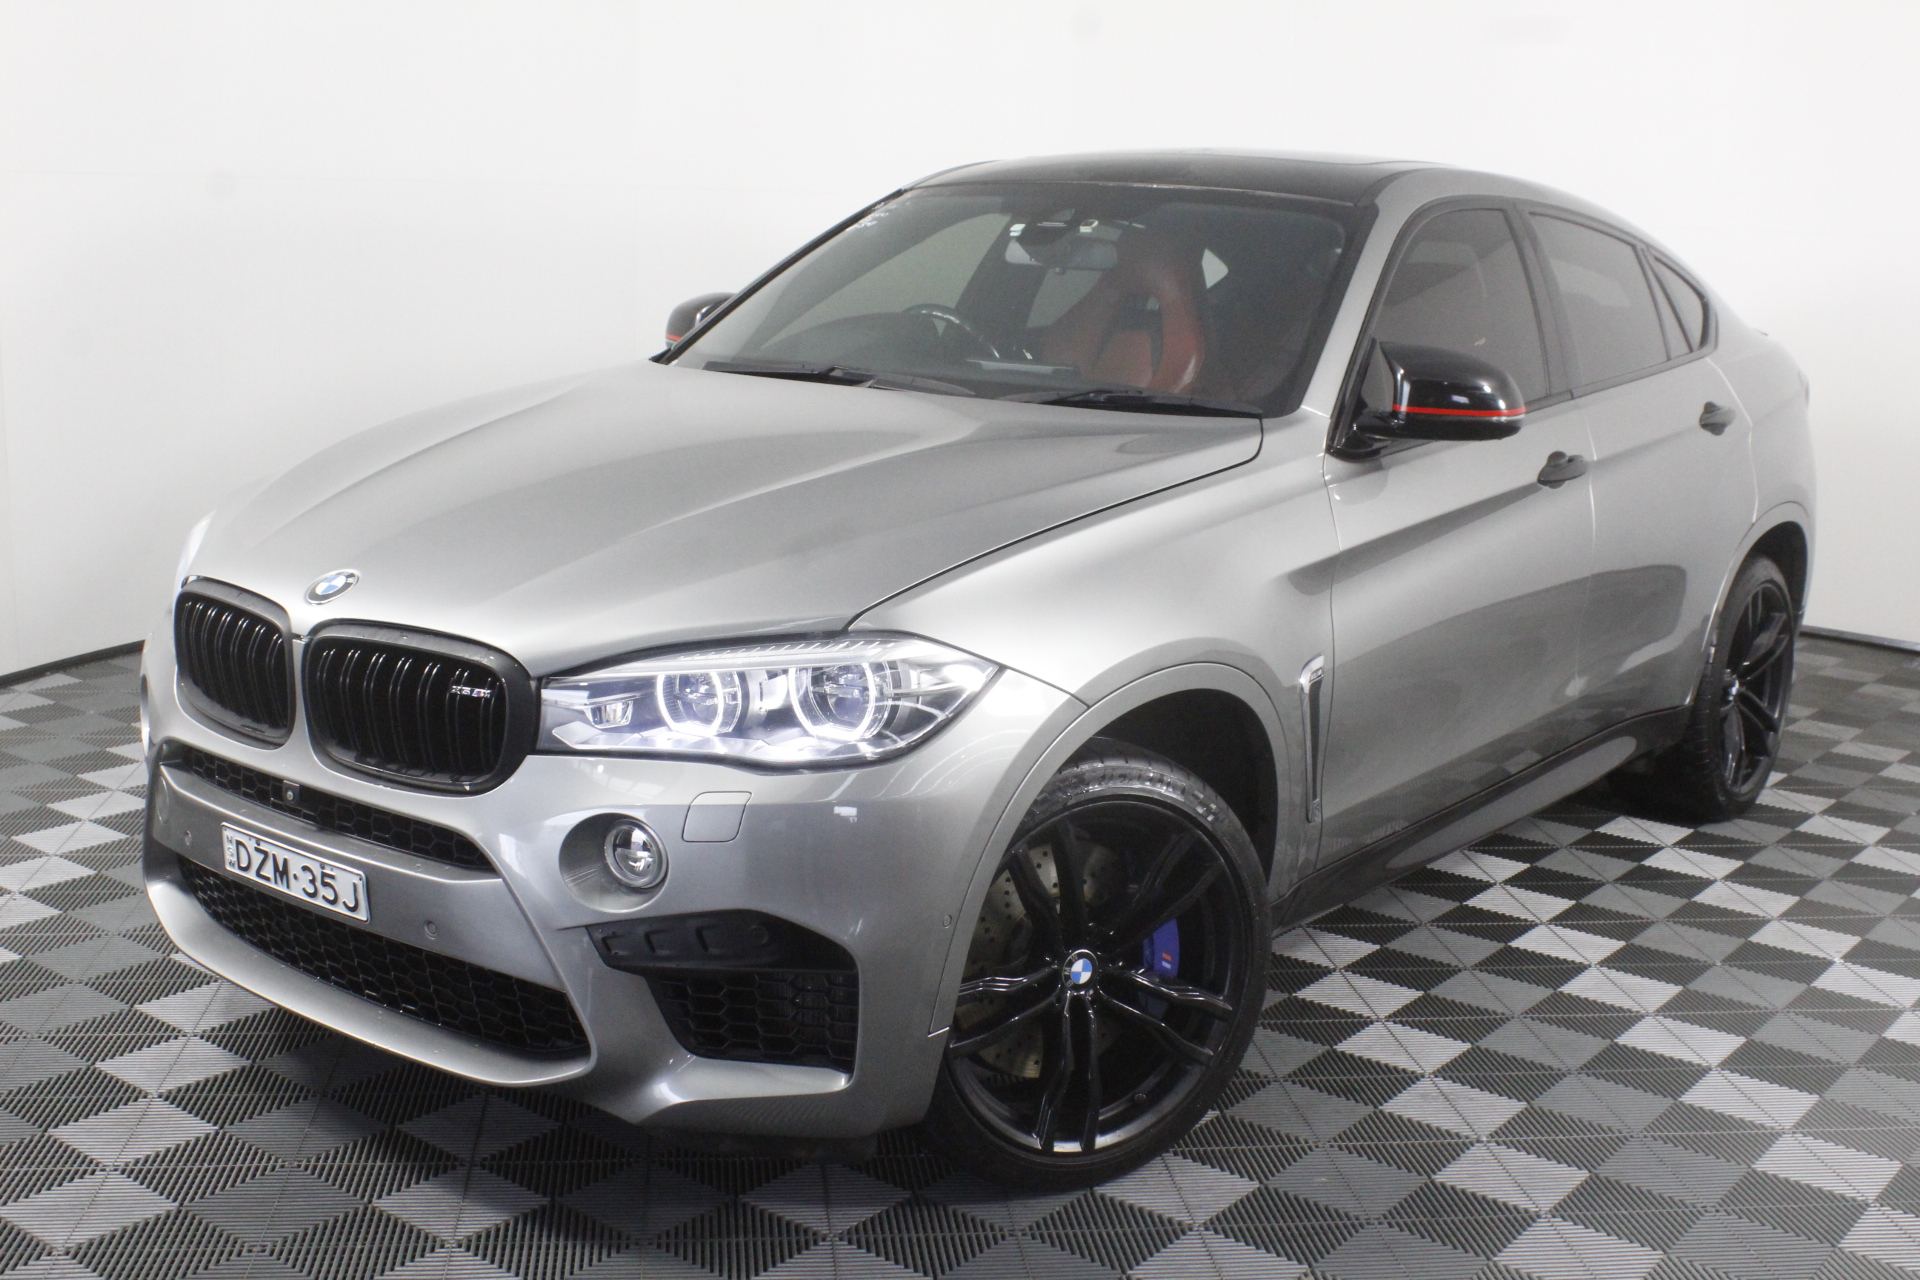 2016 BMW X6 M F86 Automatic - 8 Speed Coupe